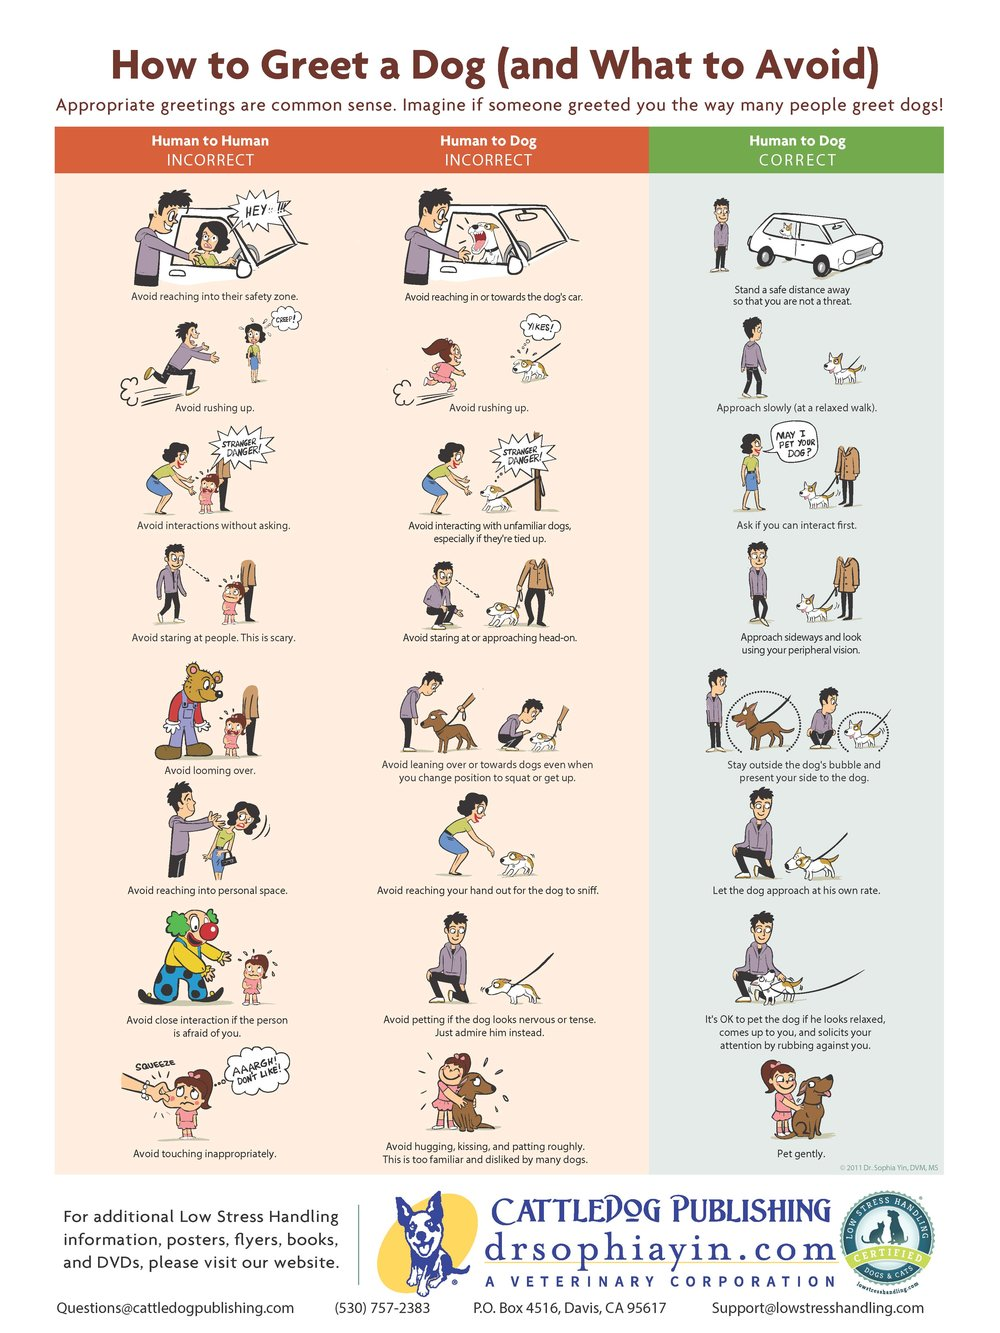 How-to-Greet-a-Dog-Poster.jpg